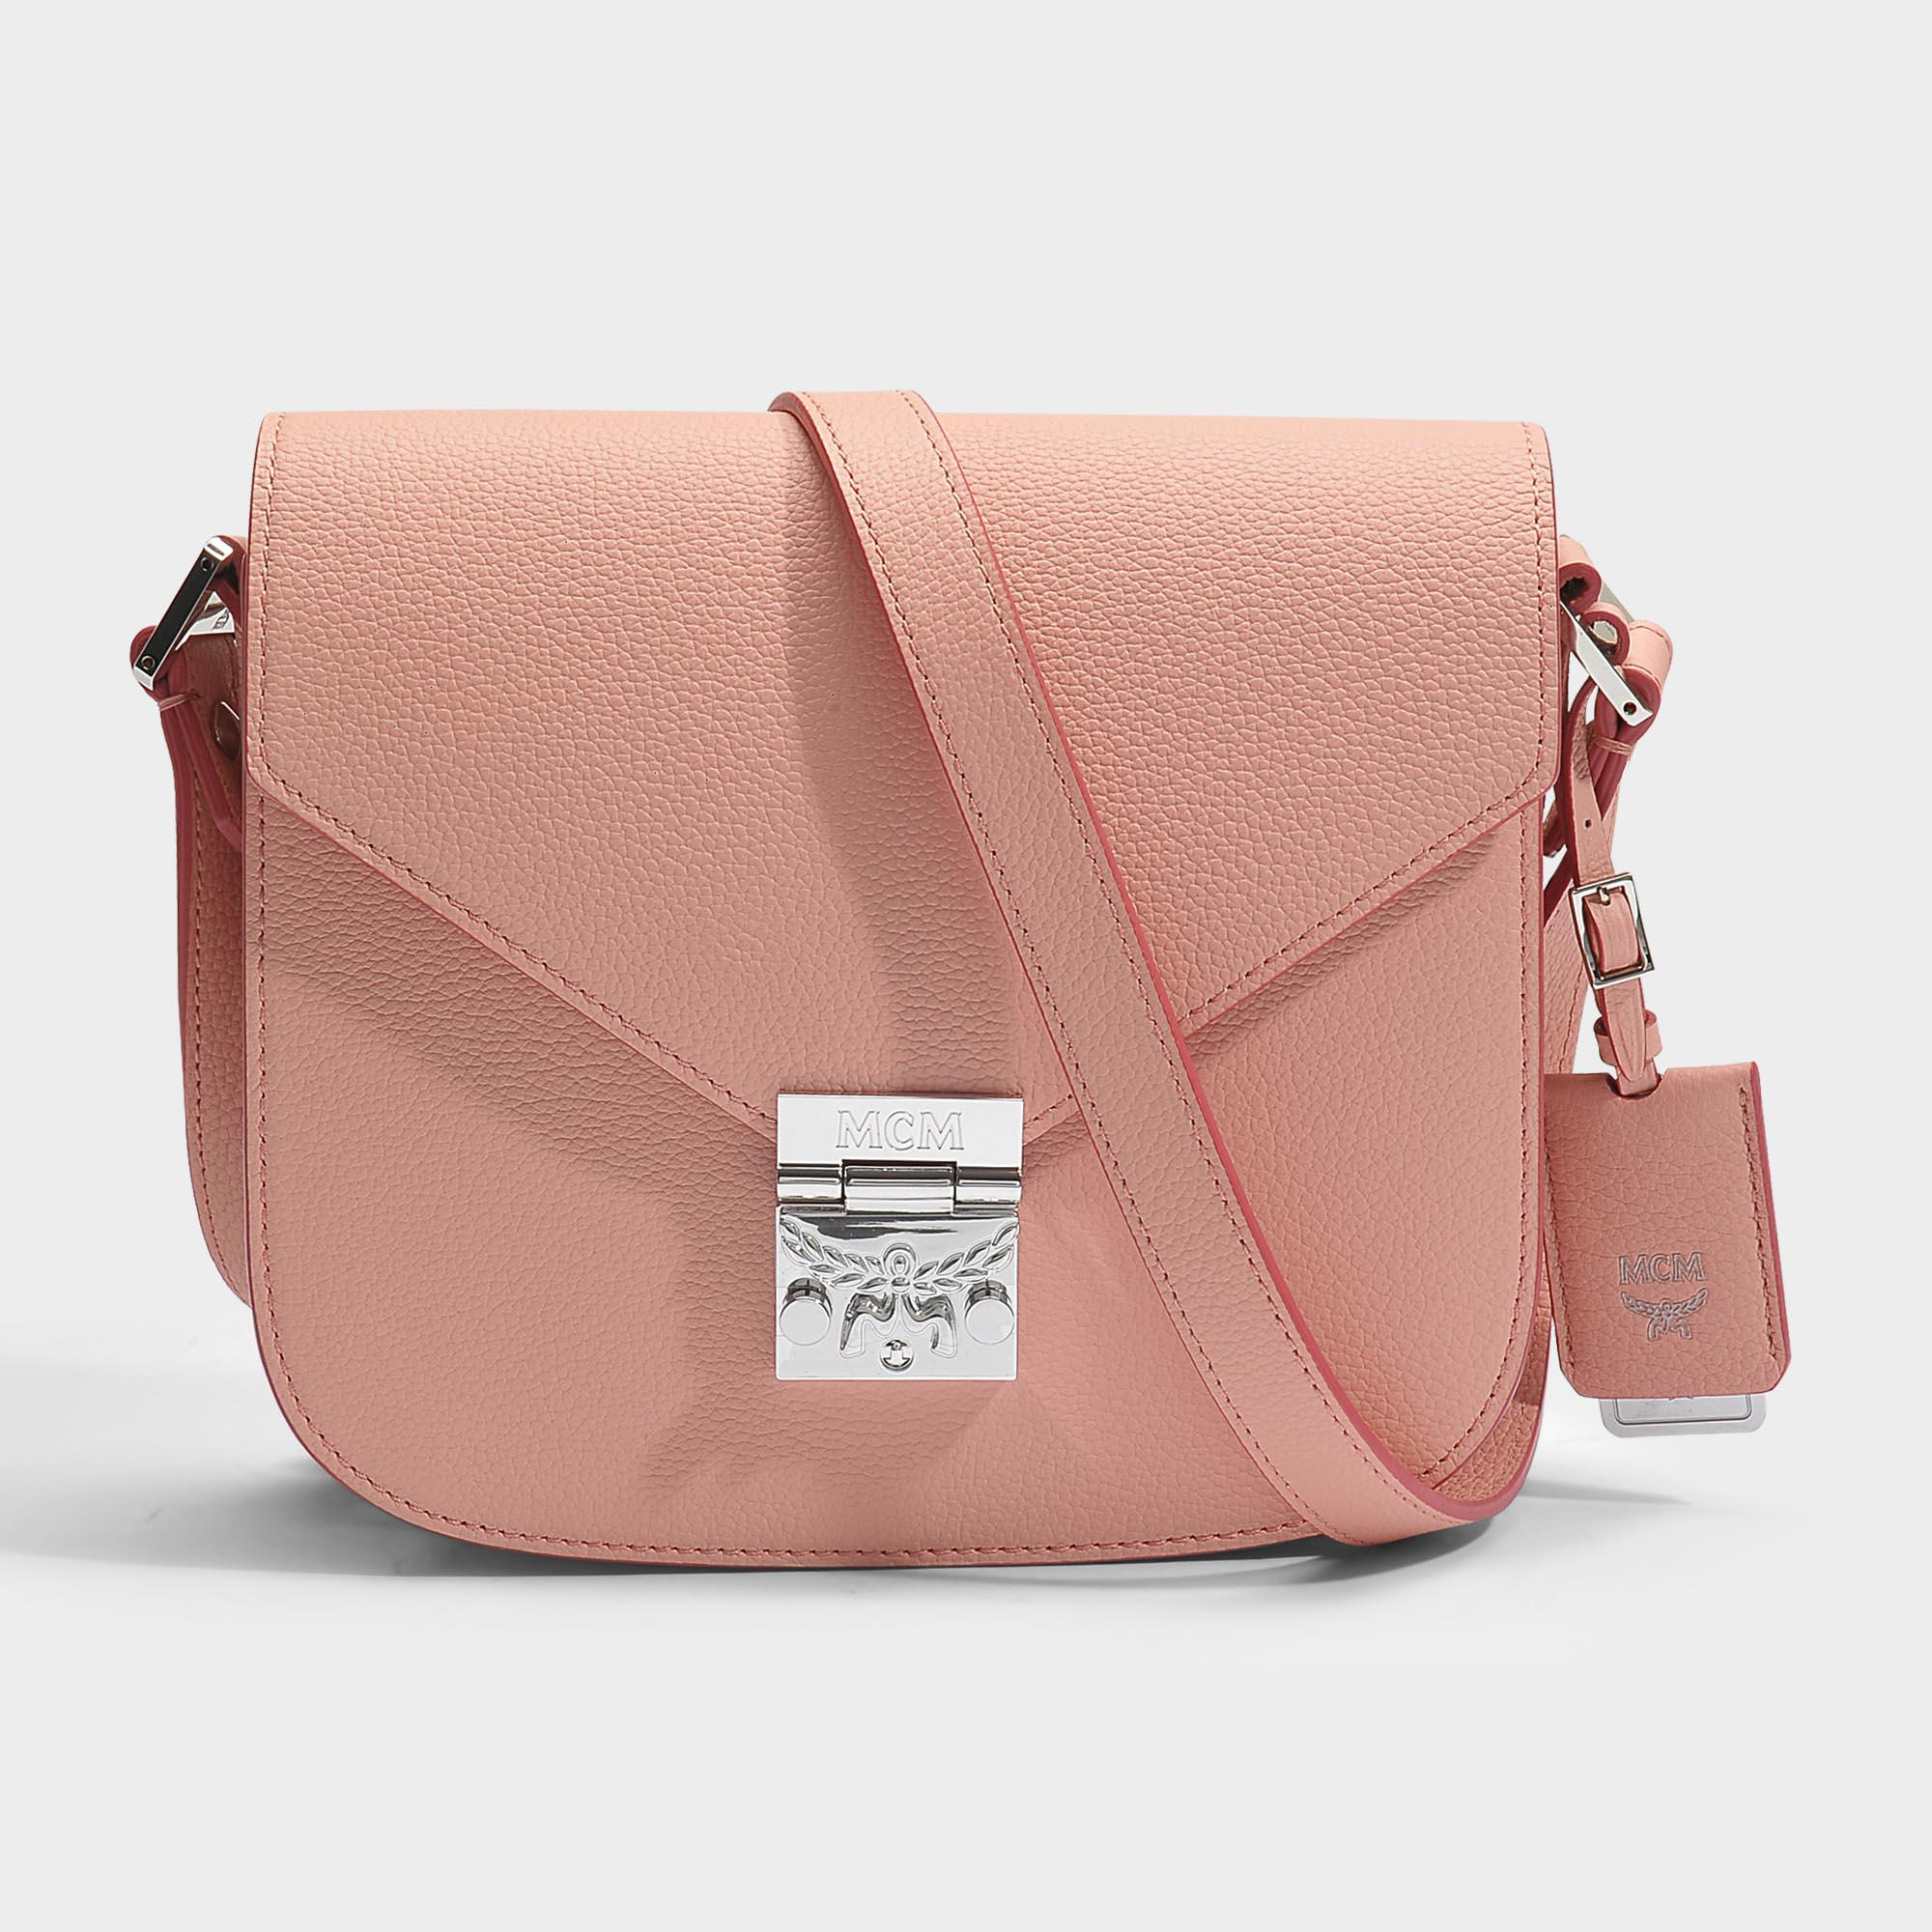 Large Wallet with Center Zip and Chain in Blush Pink Park Avenue Leather MCM ICtWsj